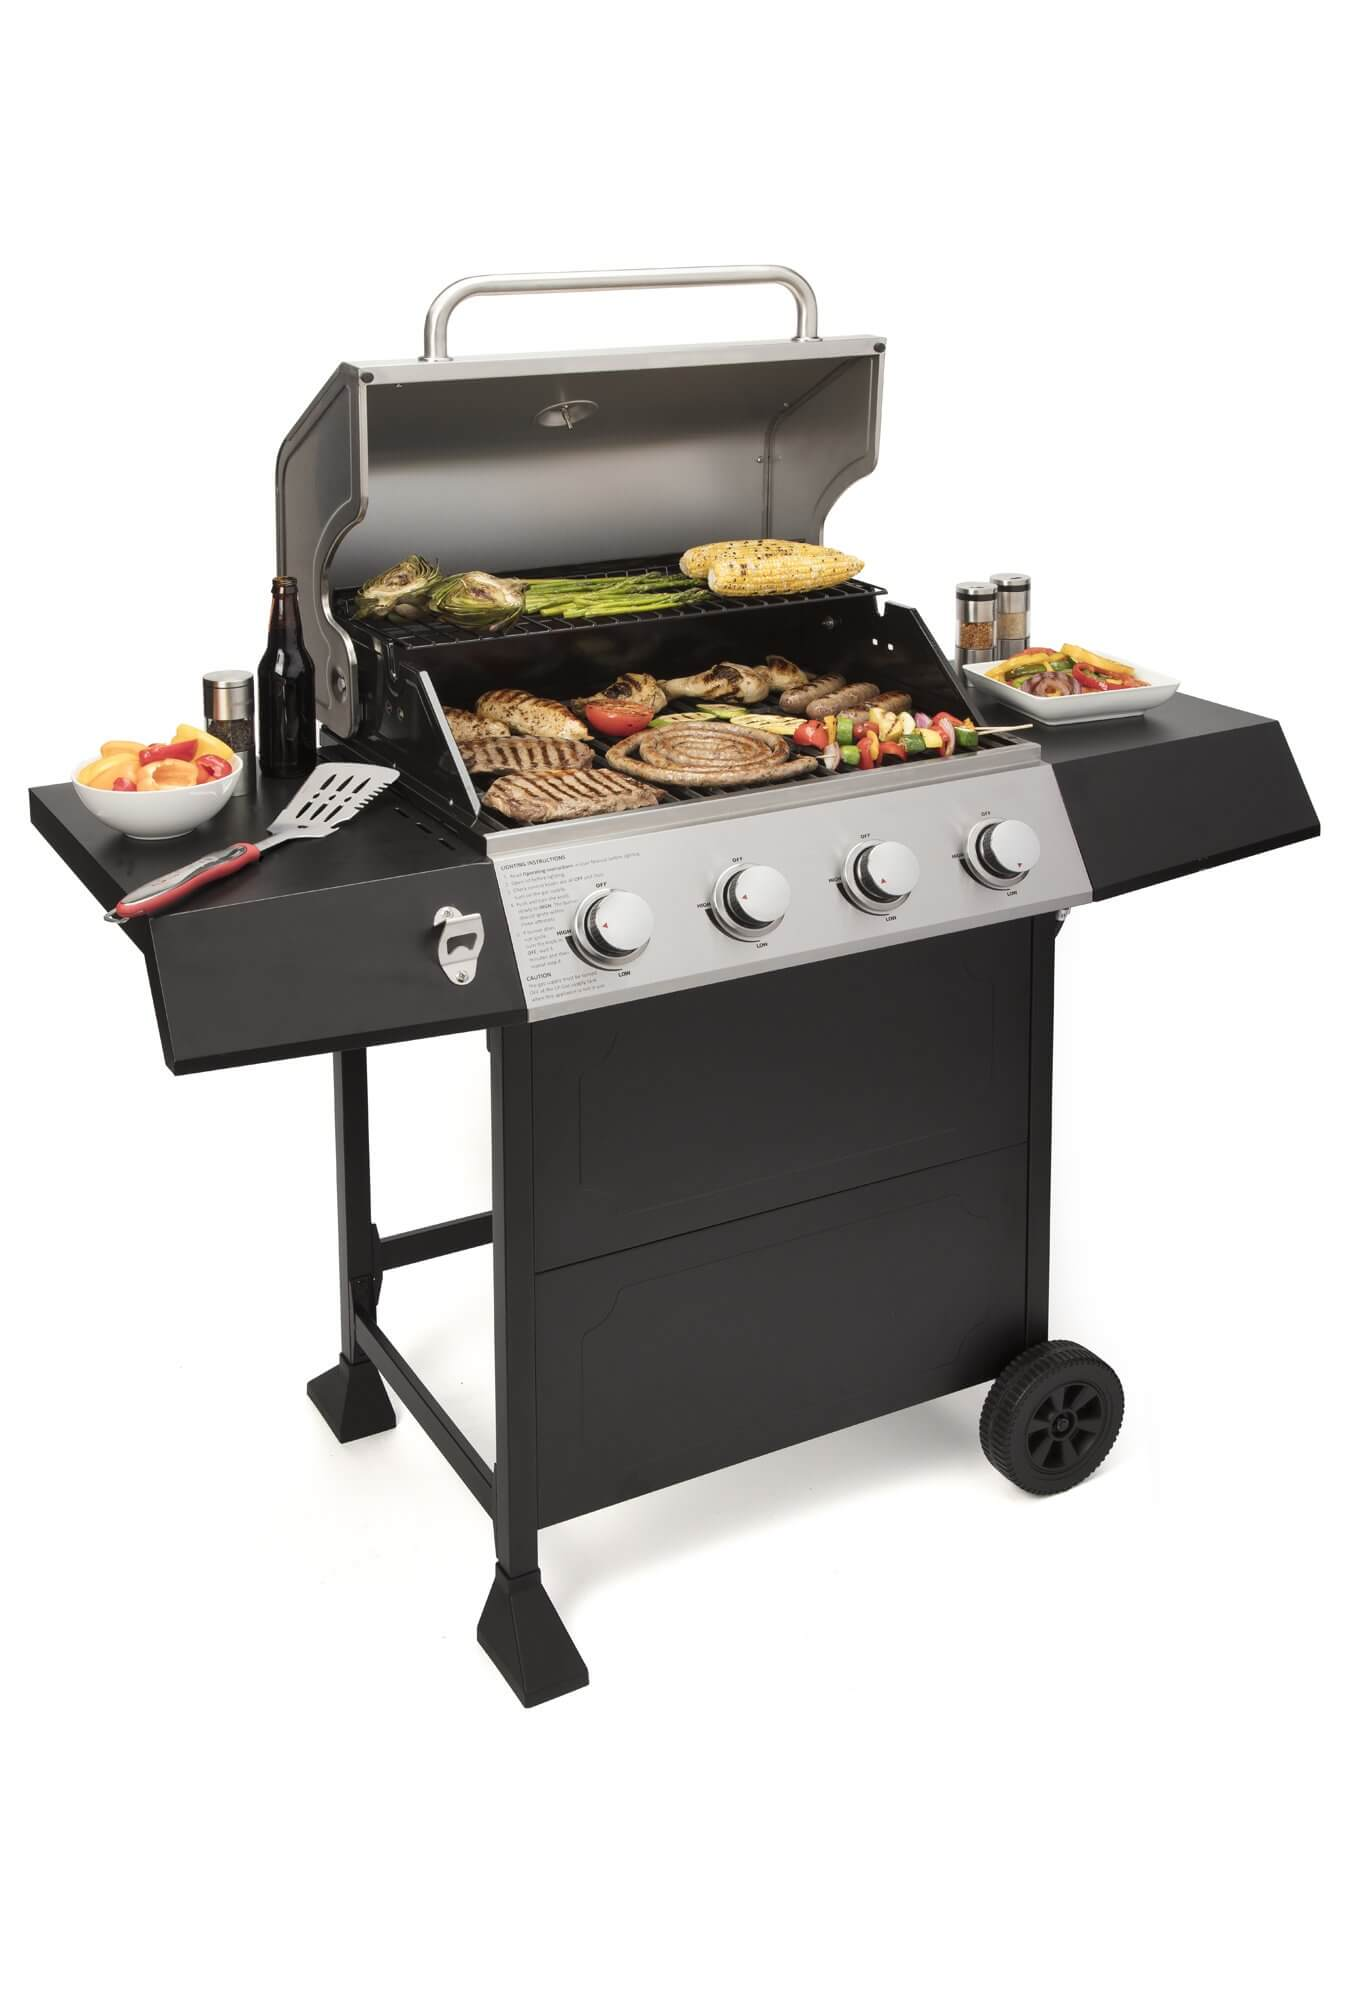 Cuisinart CGG-7400 Full Size Four Burner Gas Grill, best value gas grill, best rated gas grills, best gas grills under 300, best gas grill under 300, best gas grill under $200, best smokers under 300, Best Gas Grill under $300 for Delicious and Easy Home Grilling